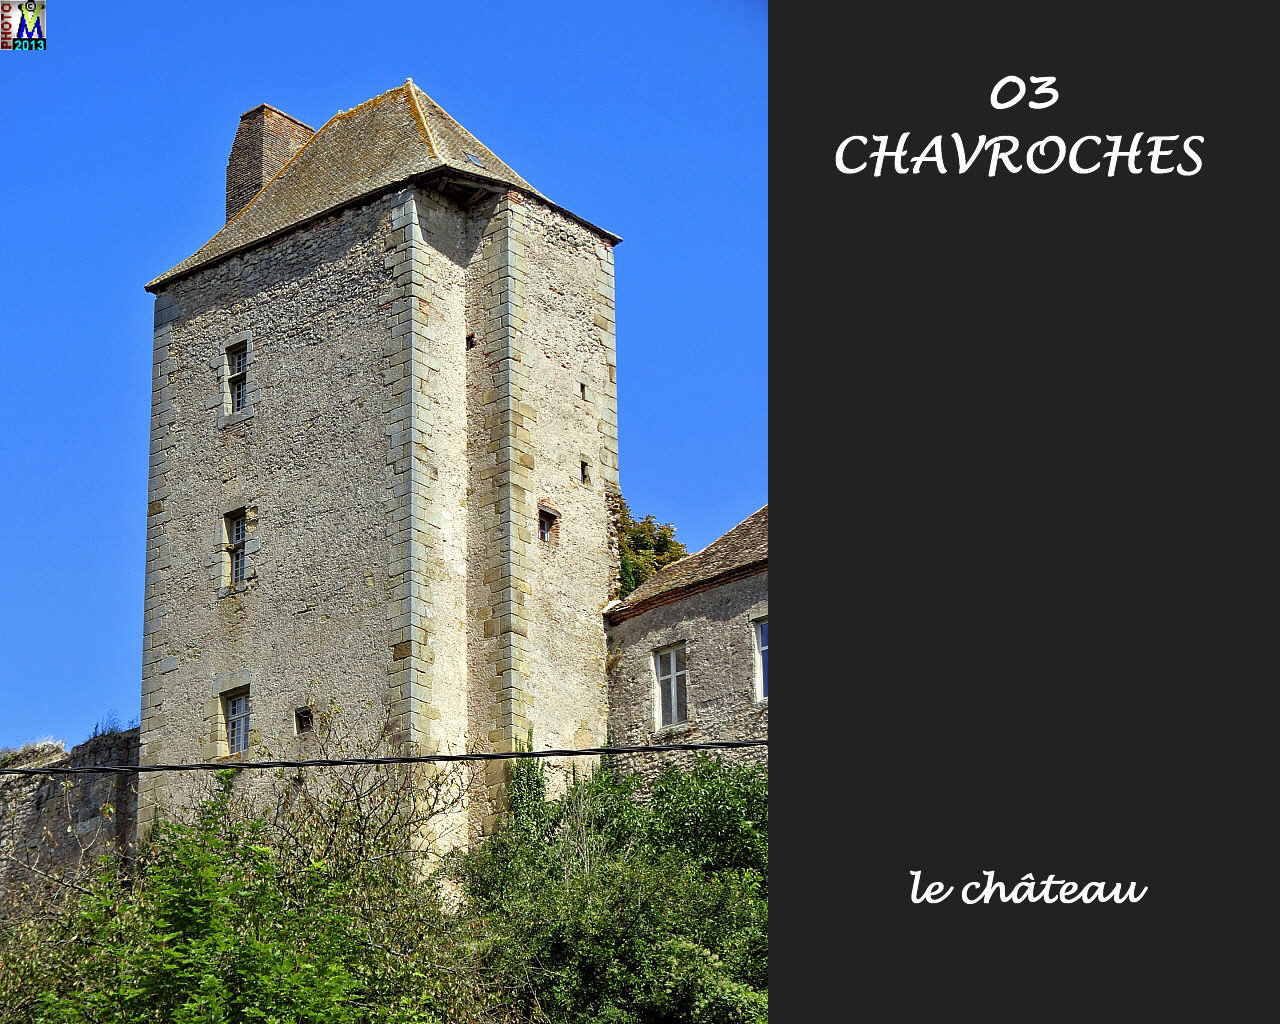 03CHAVROCHES_chateau_106.jpg